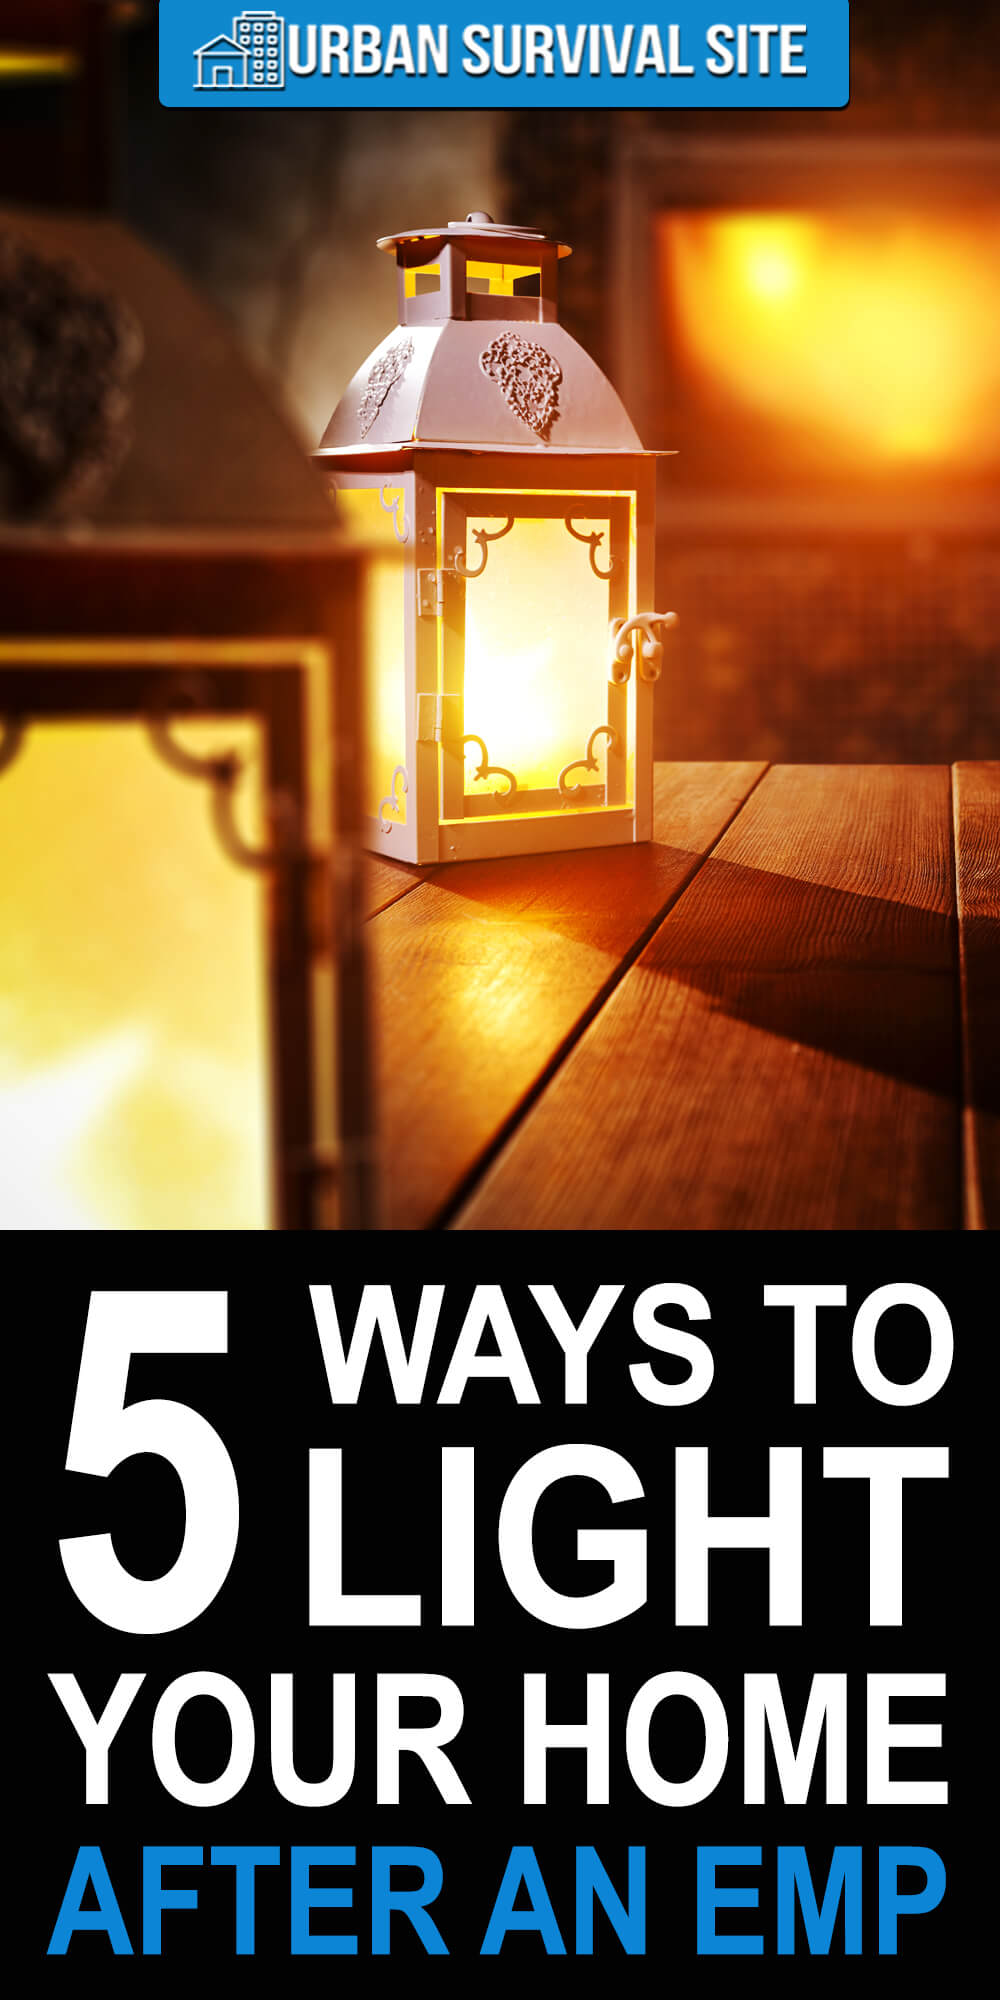 5 Ways To Light Your Home After An EMP